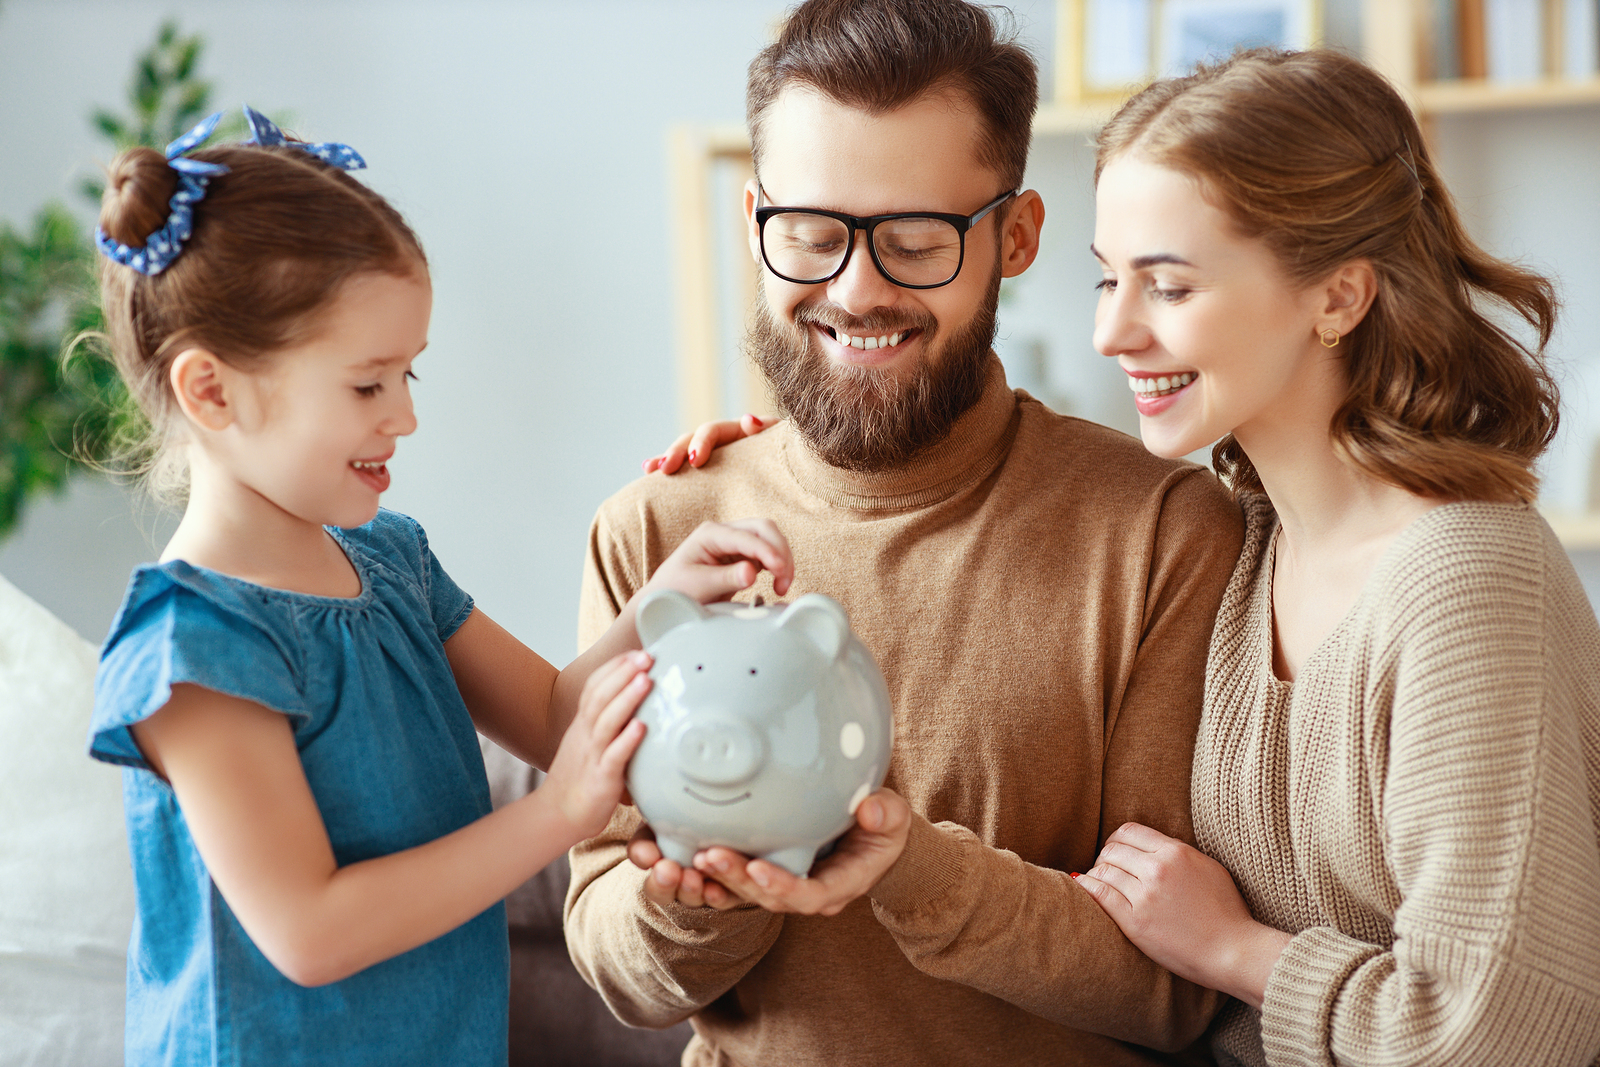 A family is shown holding a piggy bank